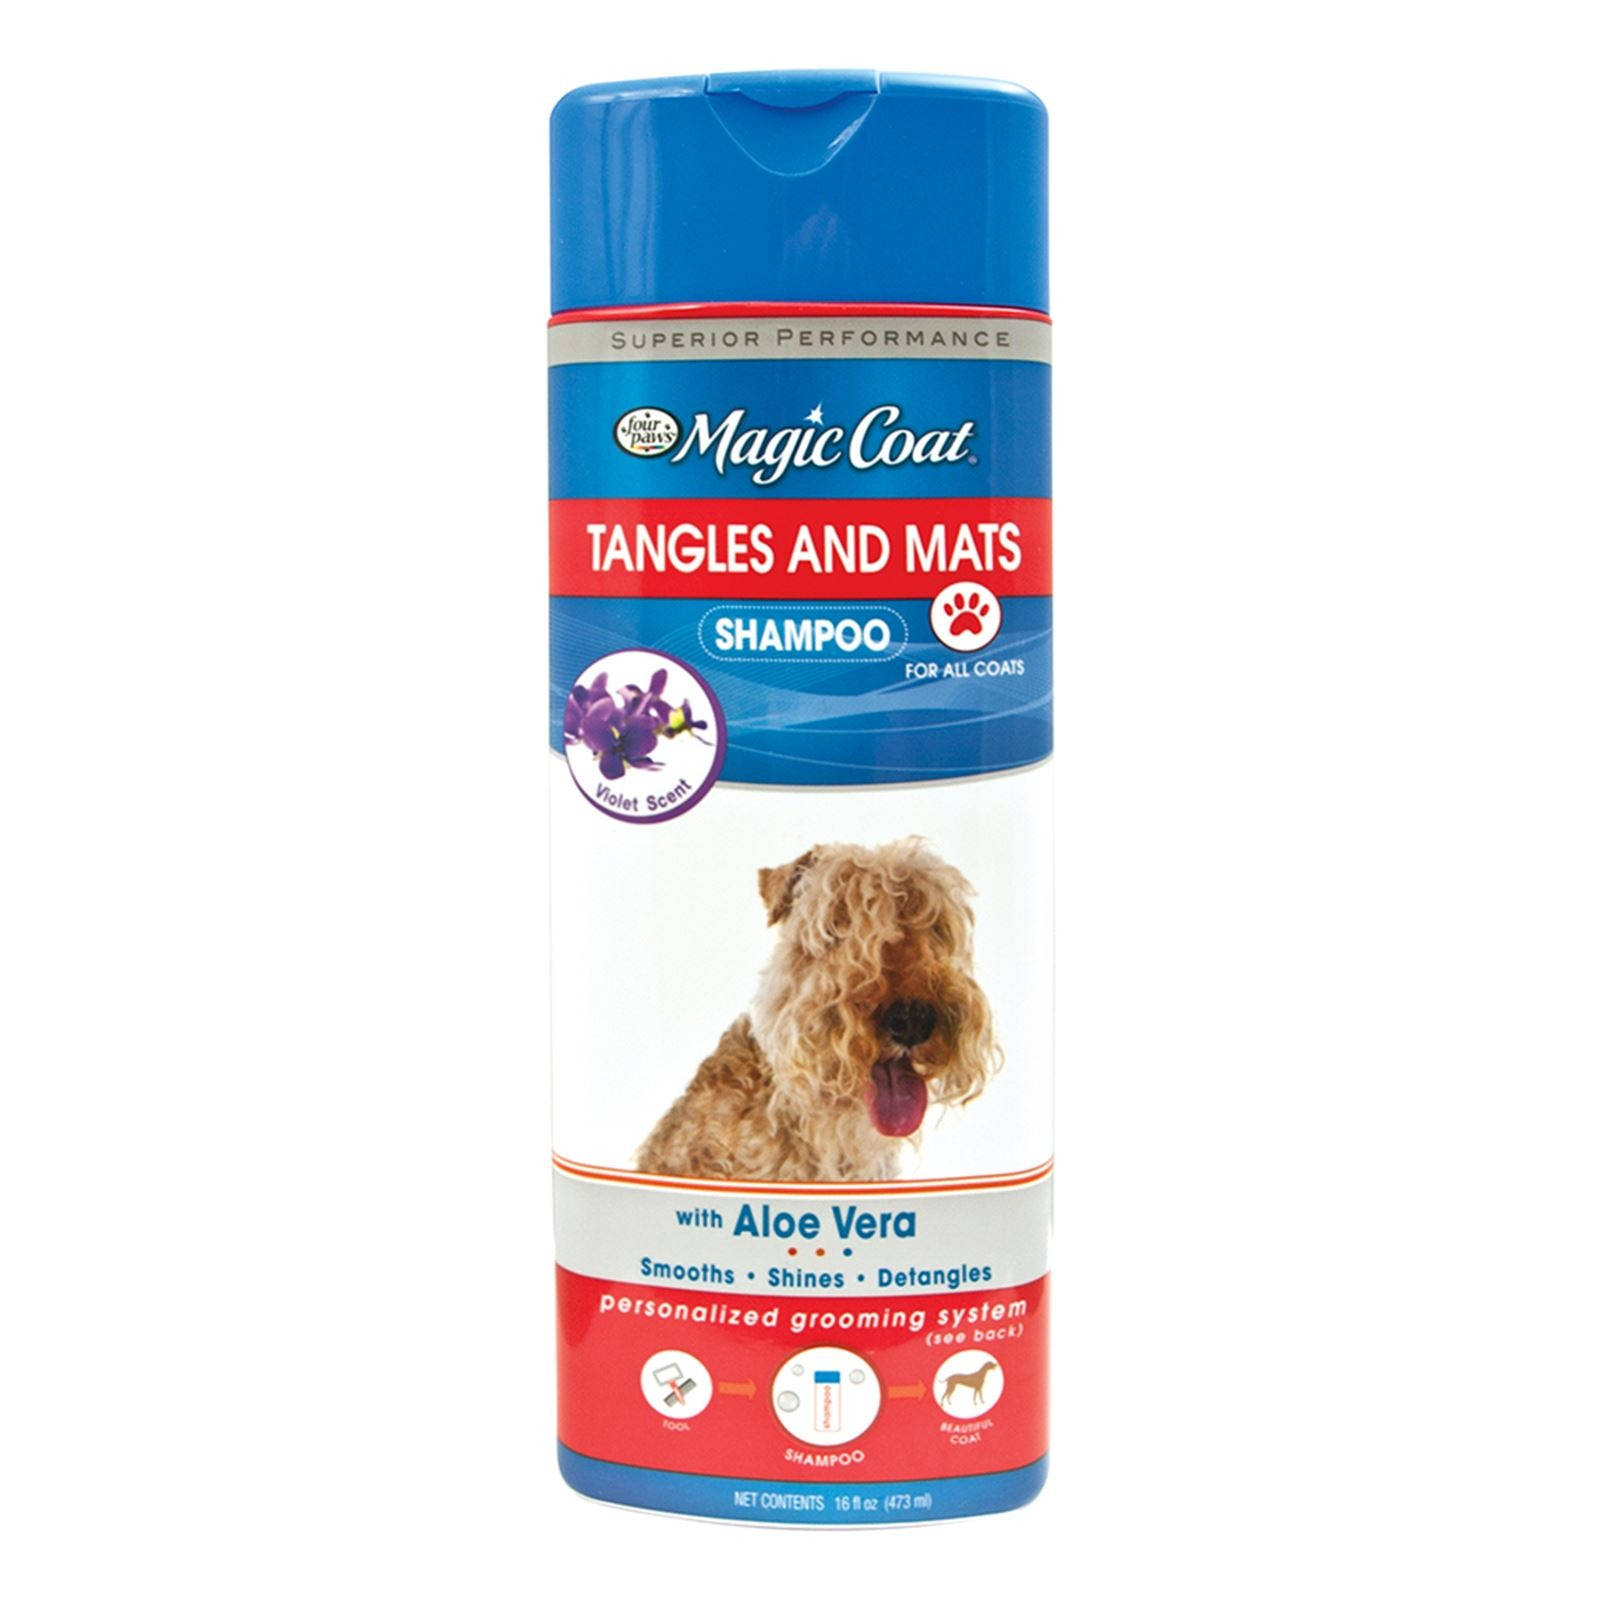 Four Paws Tangles & Mats Shampoo